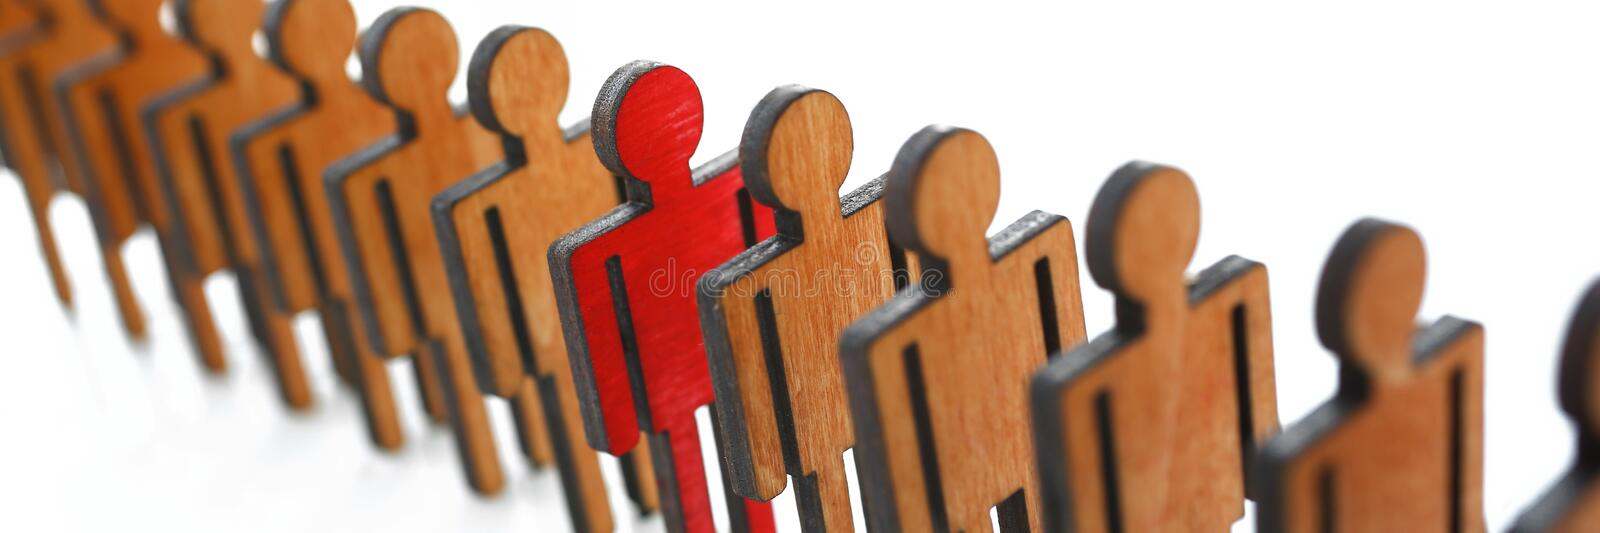 Male red plastic toy businessman silhouette. Wooden figure background closeup. Manipulate work recruitment transfer labour inspectorate experience exchange man stock photography